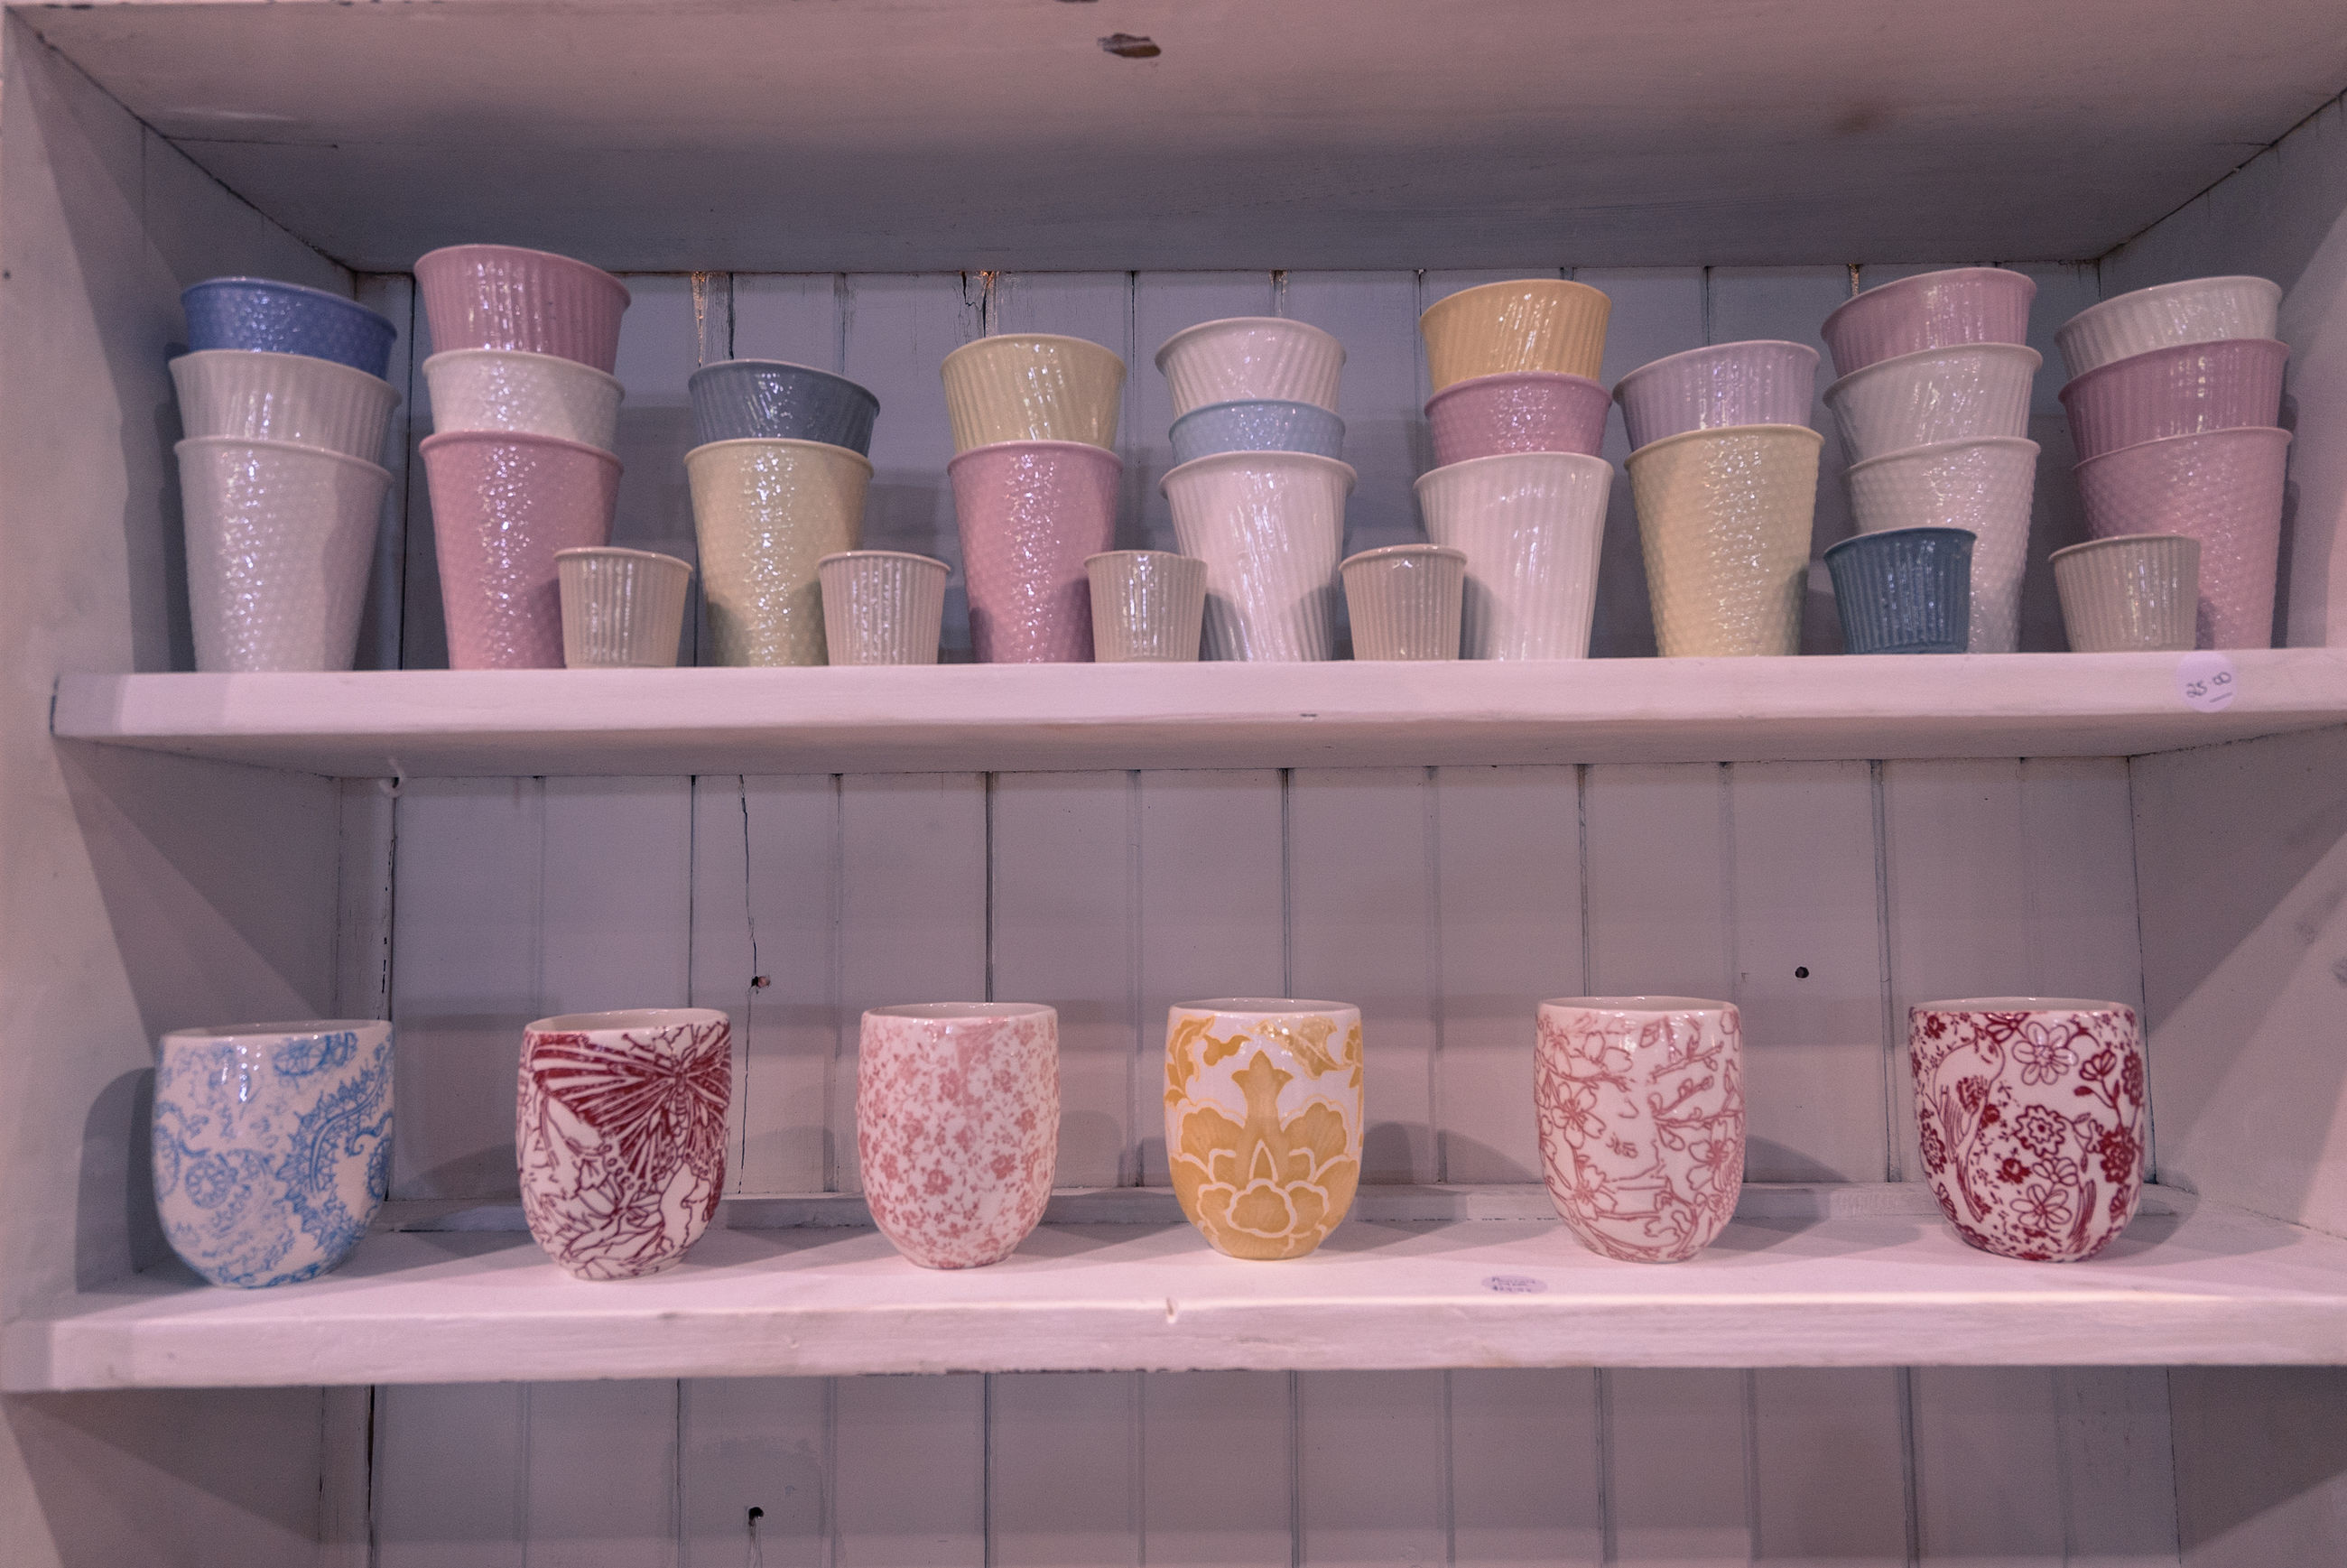 Ceramics vase and cups for sale at store